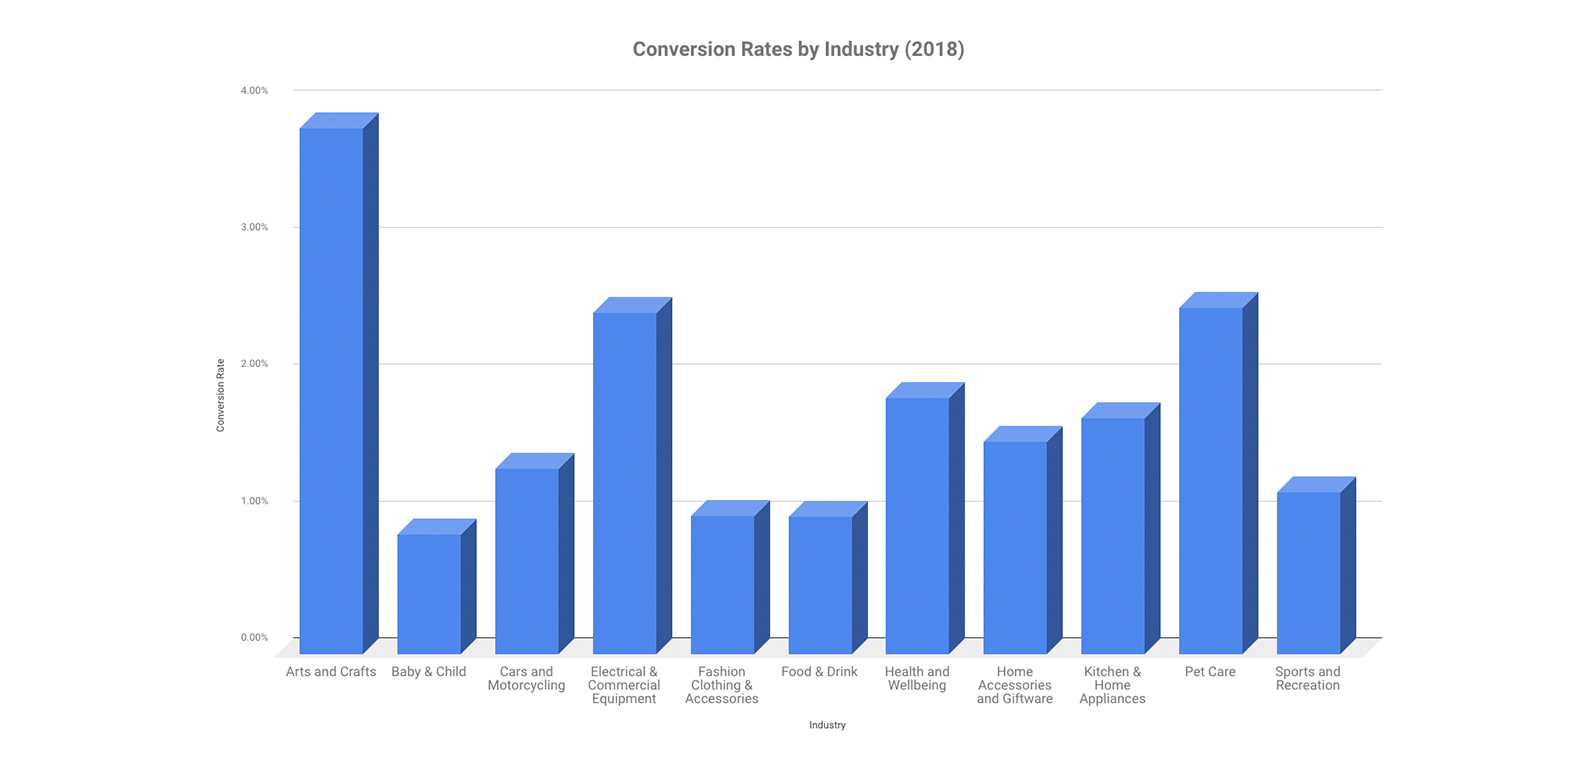 eCommerce conversion rates by industry in 2018